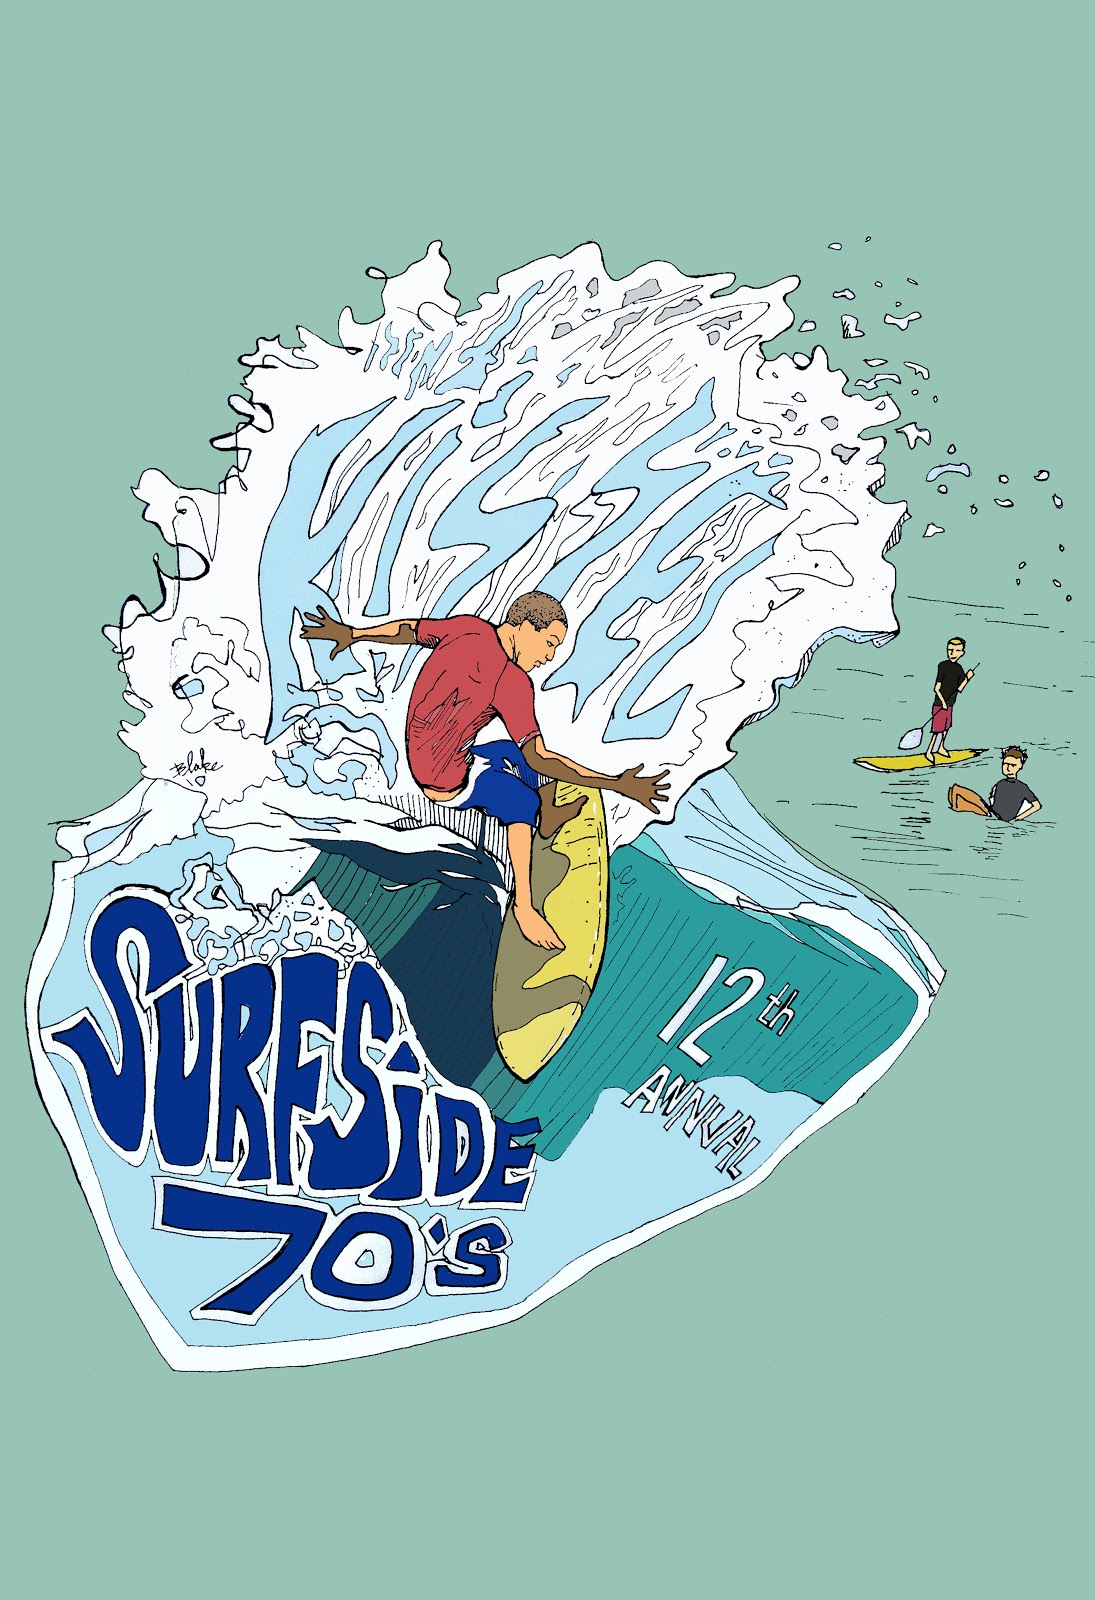 2010 12th annual Surfside Seventies poster